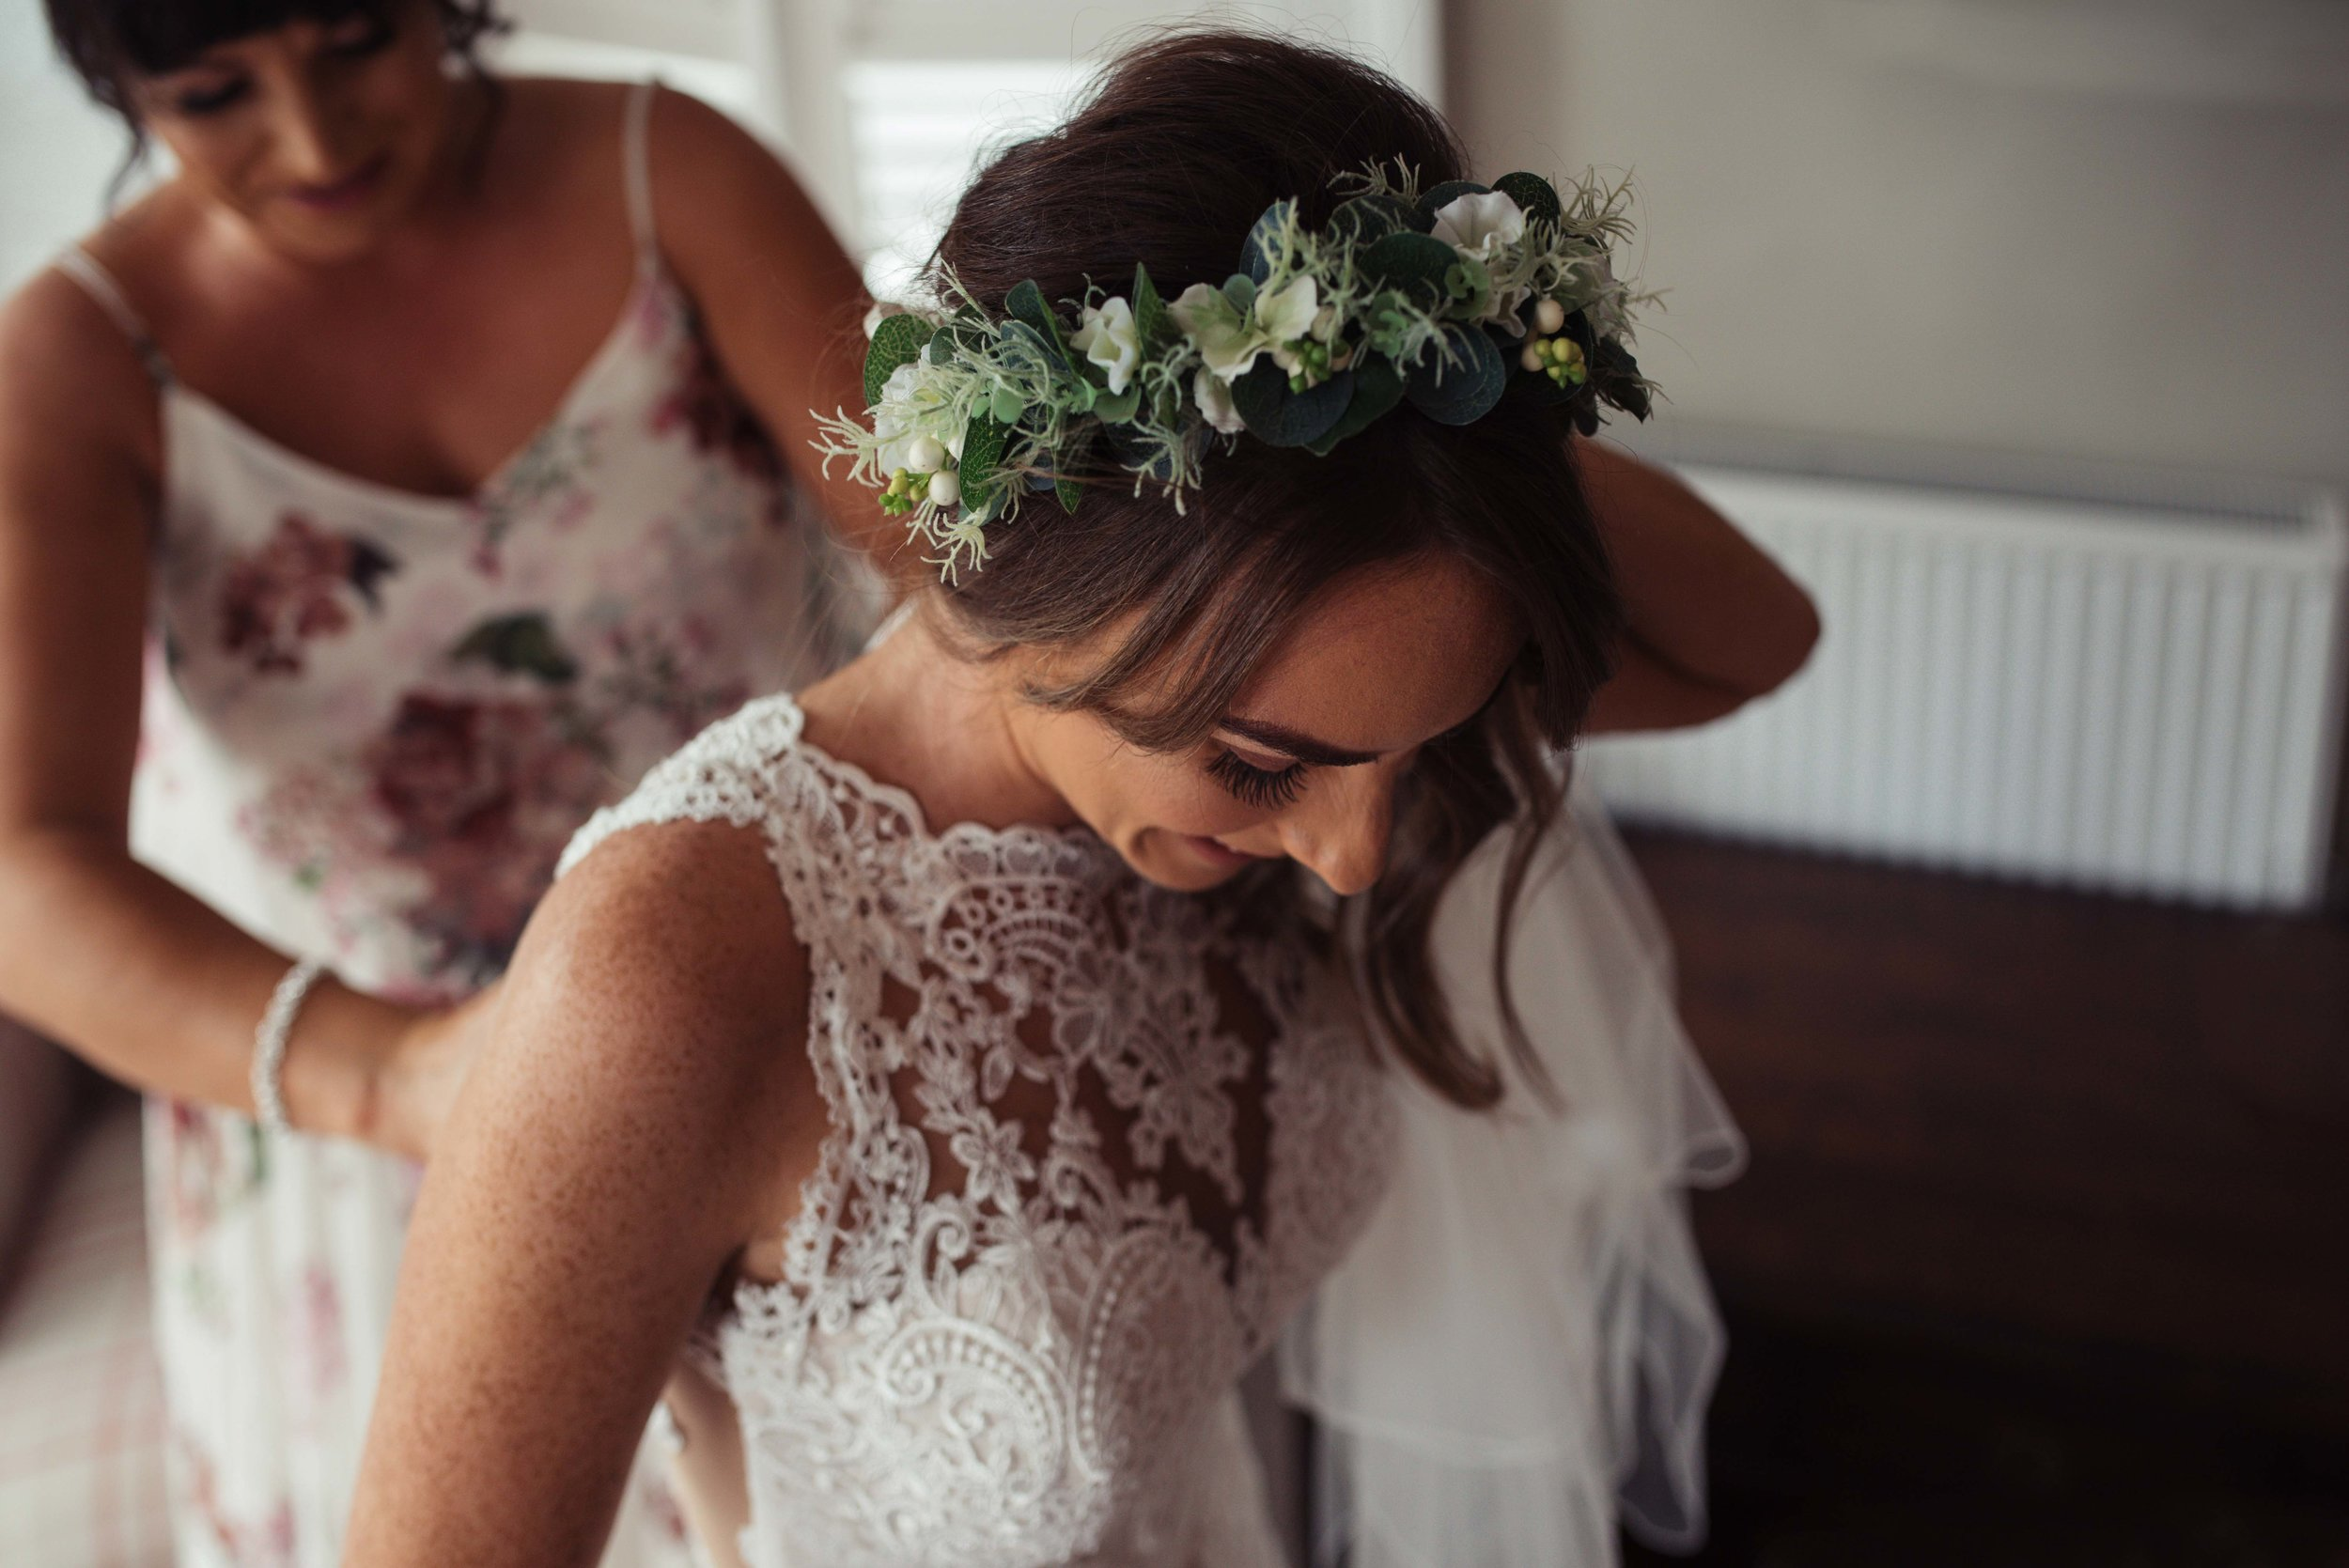 The bride smiles as her sister helps her into her lace wedding dress